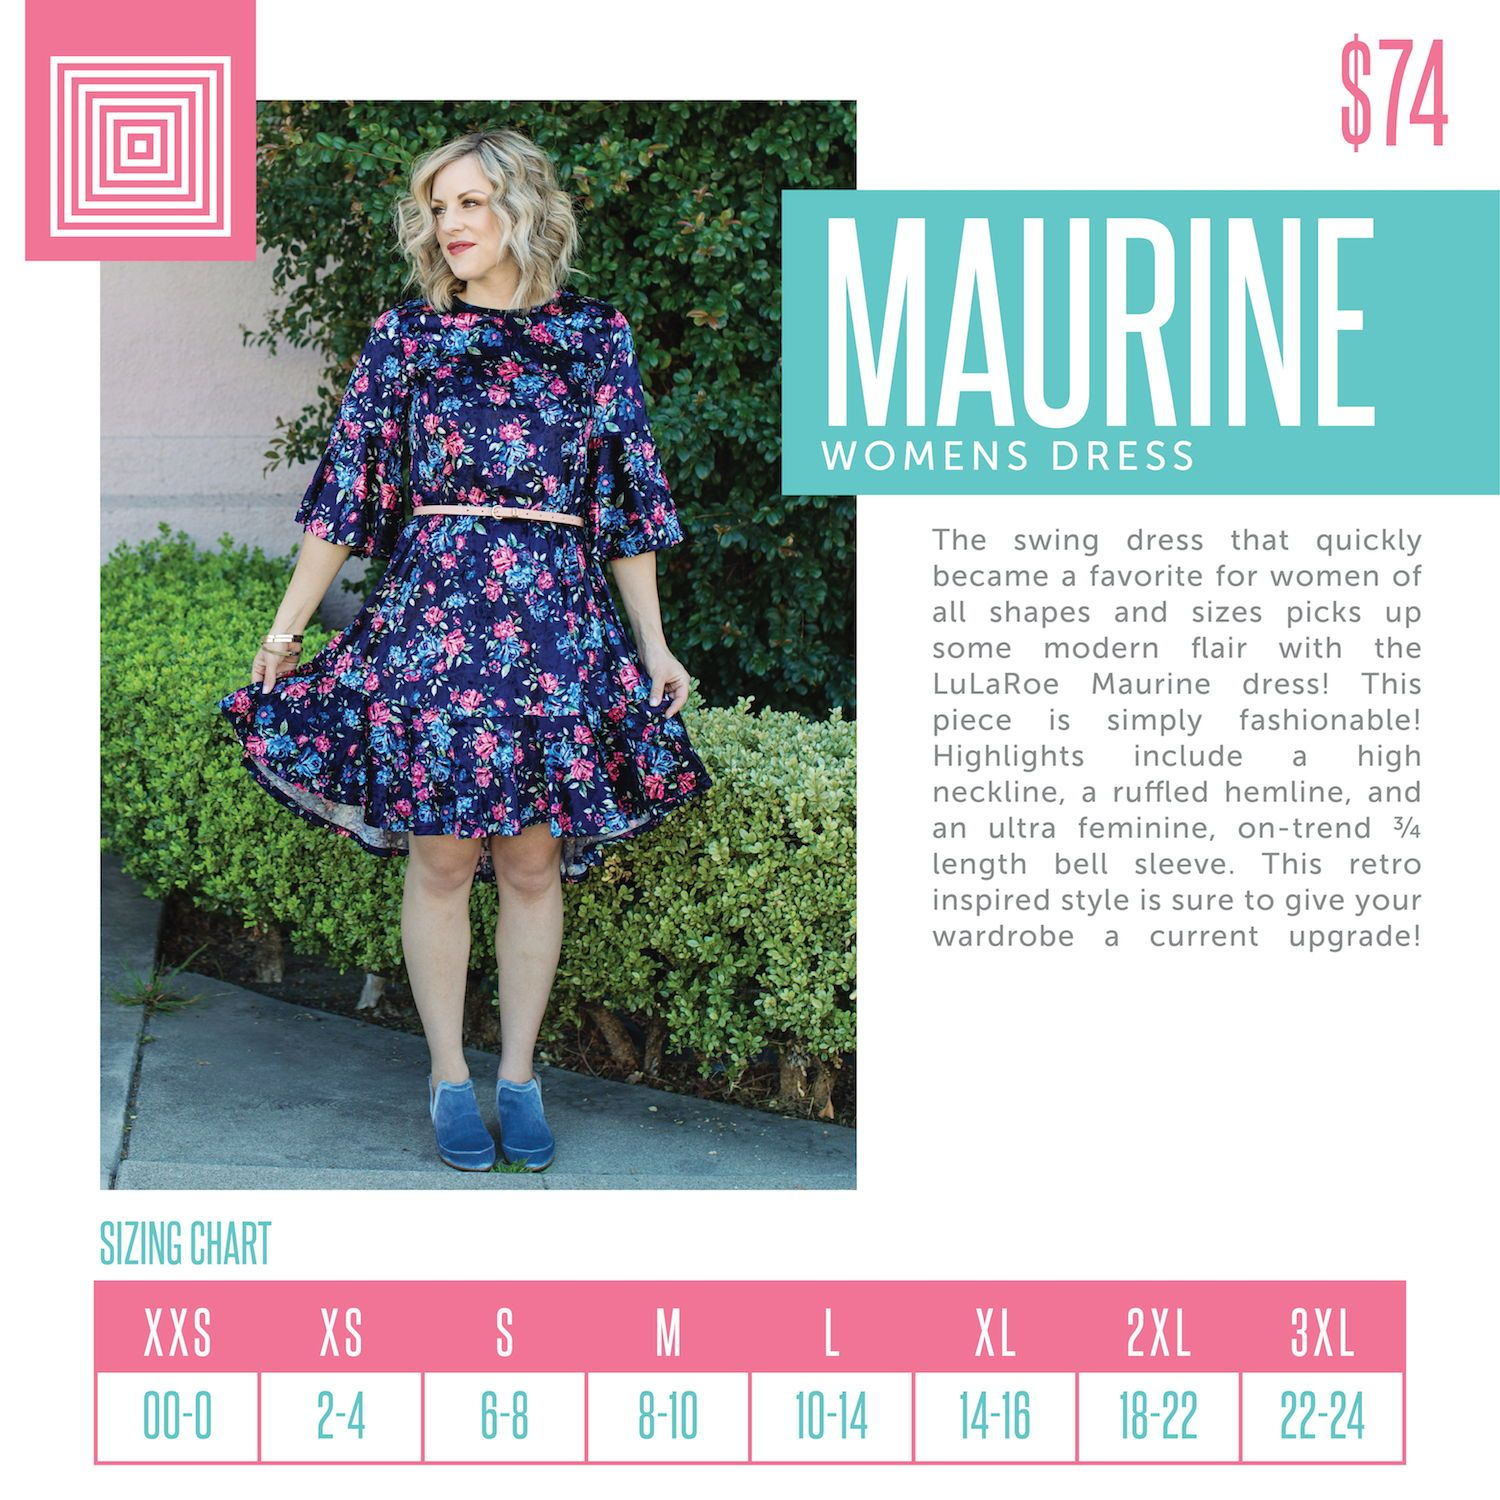 616c092b790 Introducing the brand new LuLaRoe Maurine. This retro-inspired dress  features bell sleeves and a ruffled bottom. #lularoe #lularoedress